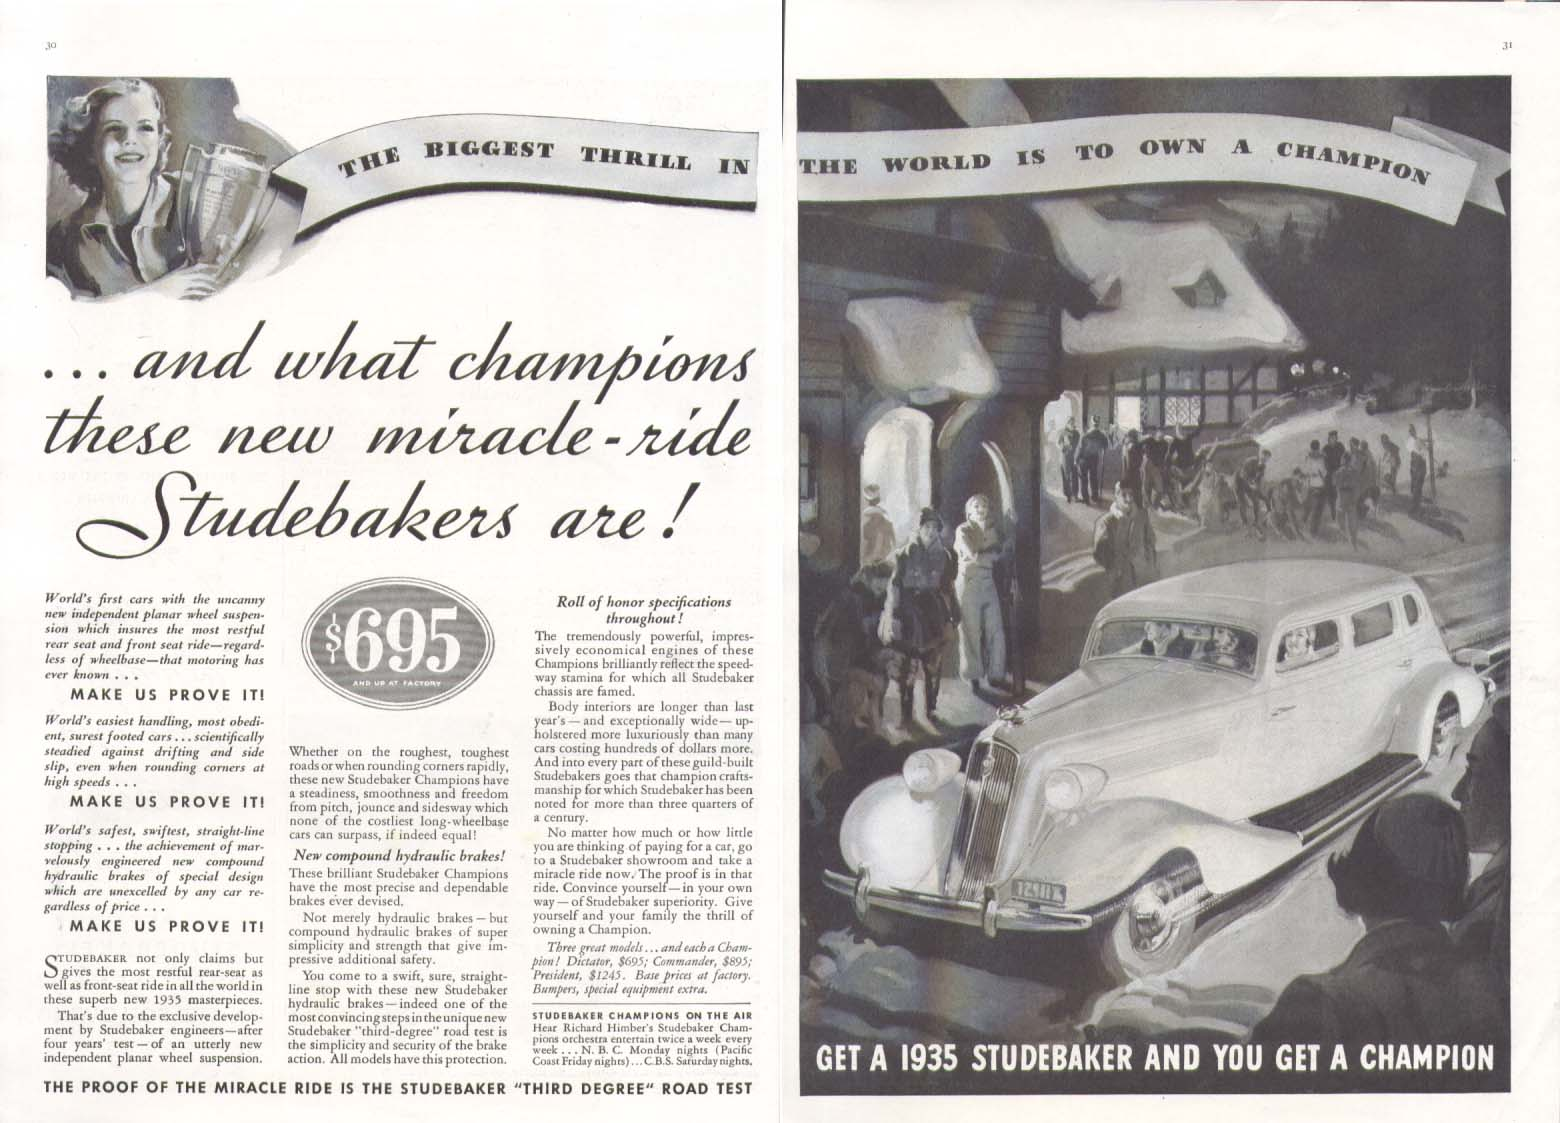 And what champions are Studebaker ad 1935